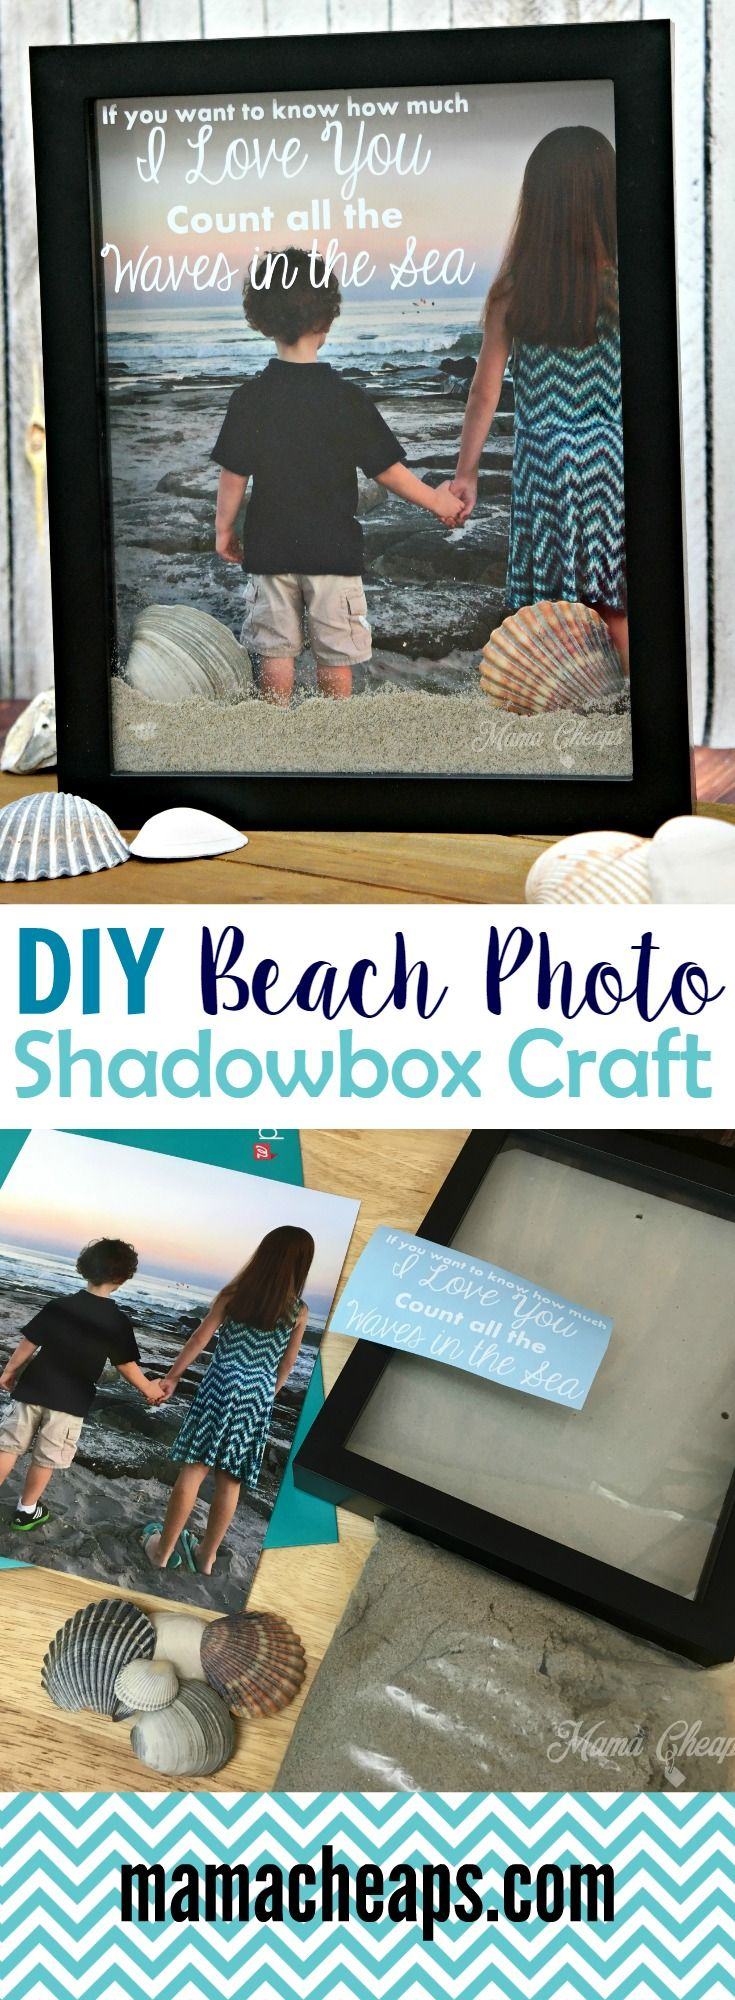 DIY Craft: DIY Beach Photo Shadowbox Craft - super cute and frugal way to preserve vacation memories! Find more great DIY craft ideas on <a href=